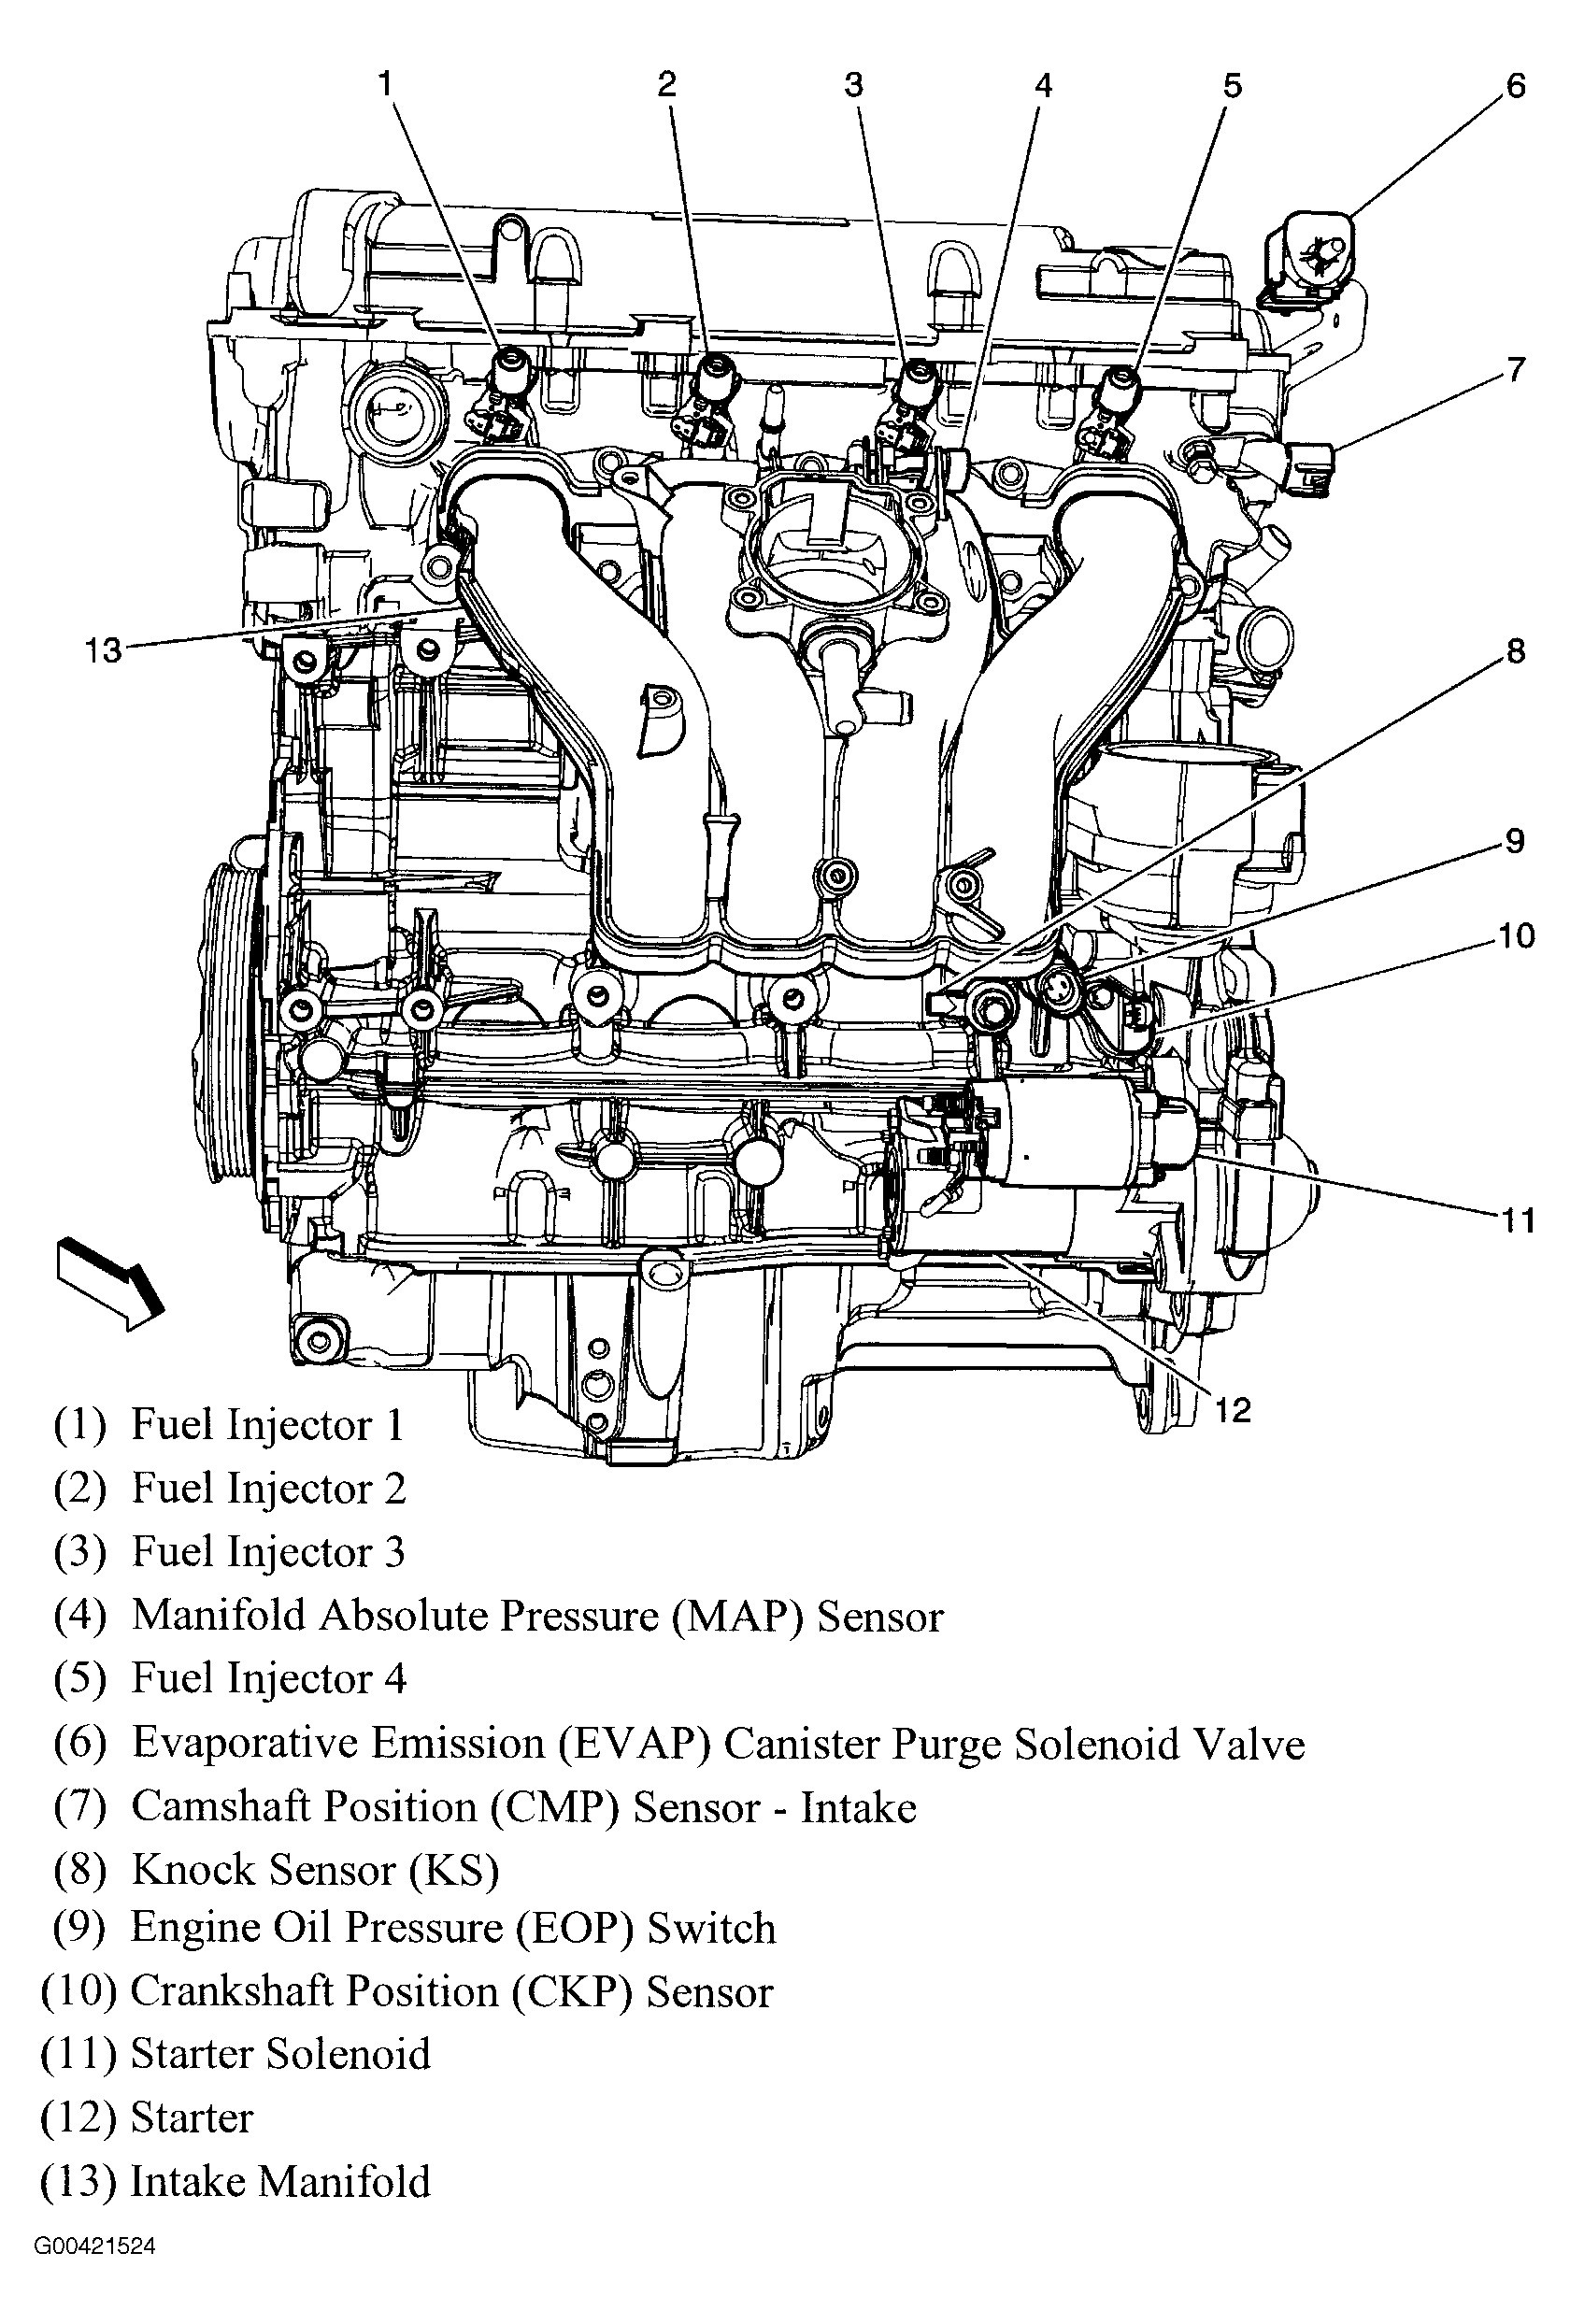 2008 Hhr 2 2 Liter Wire Spec For Accelerator Pedal Diagram